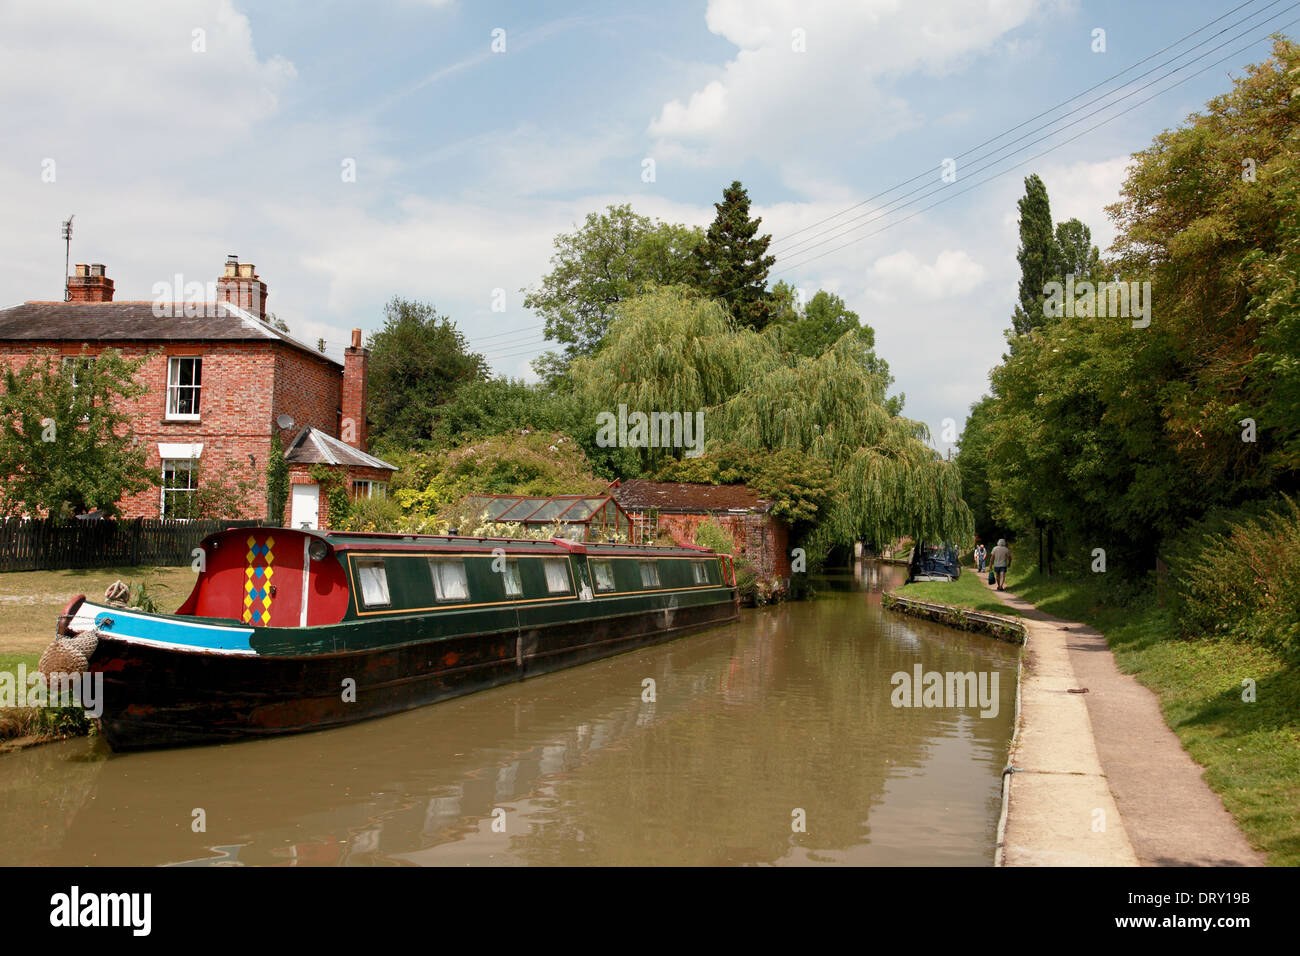 A narrowboat moored on the Oxford Canal in the village of Cropredy, Oxfordshire - Stock Image